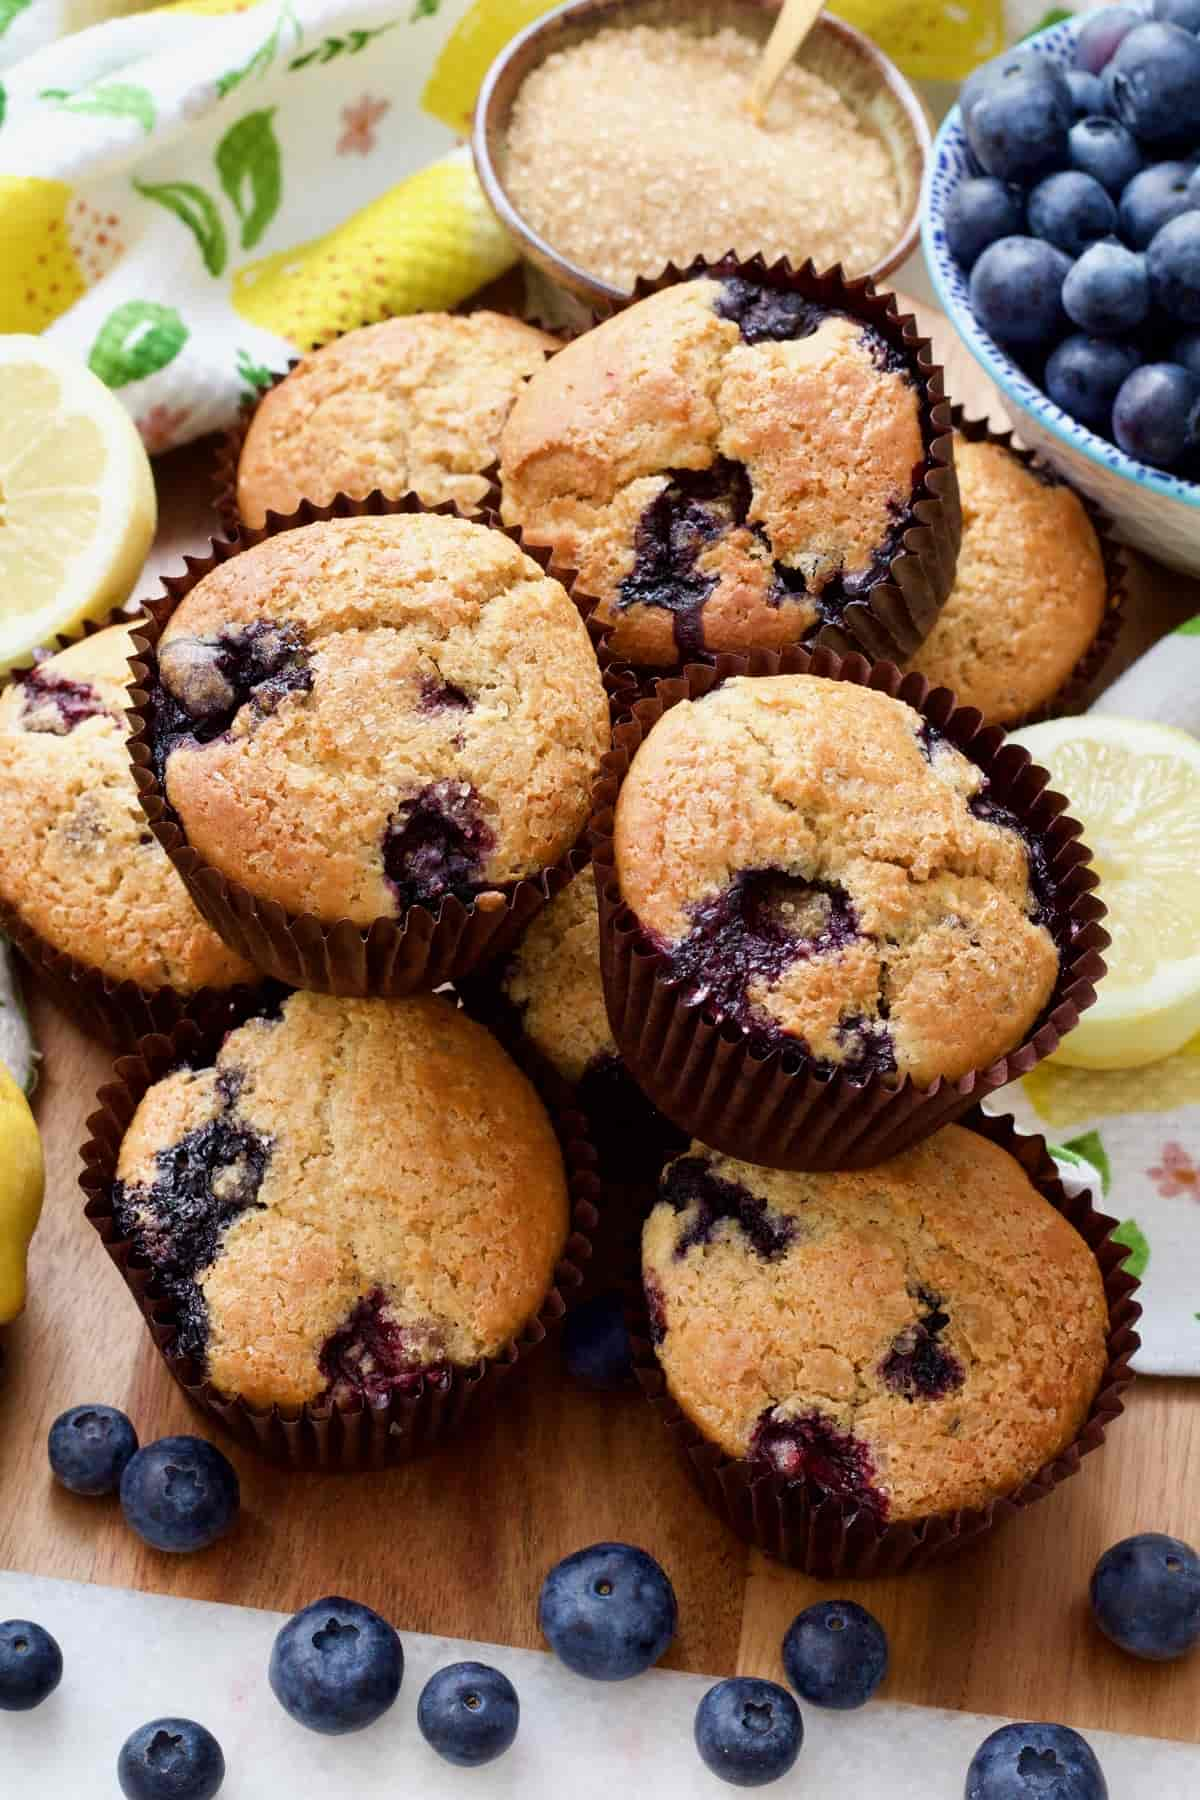 Blueberry muffins piled up on a board.